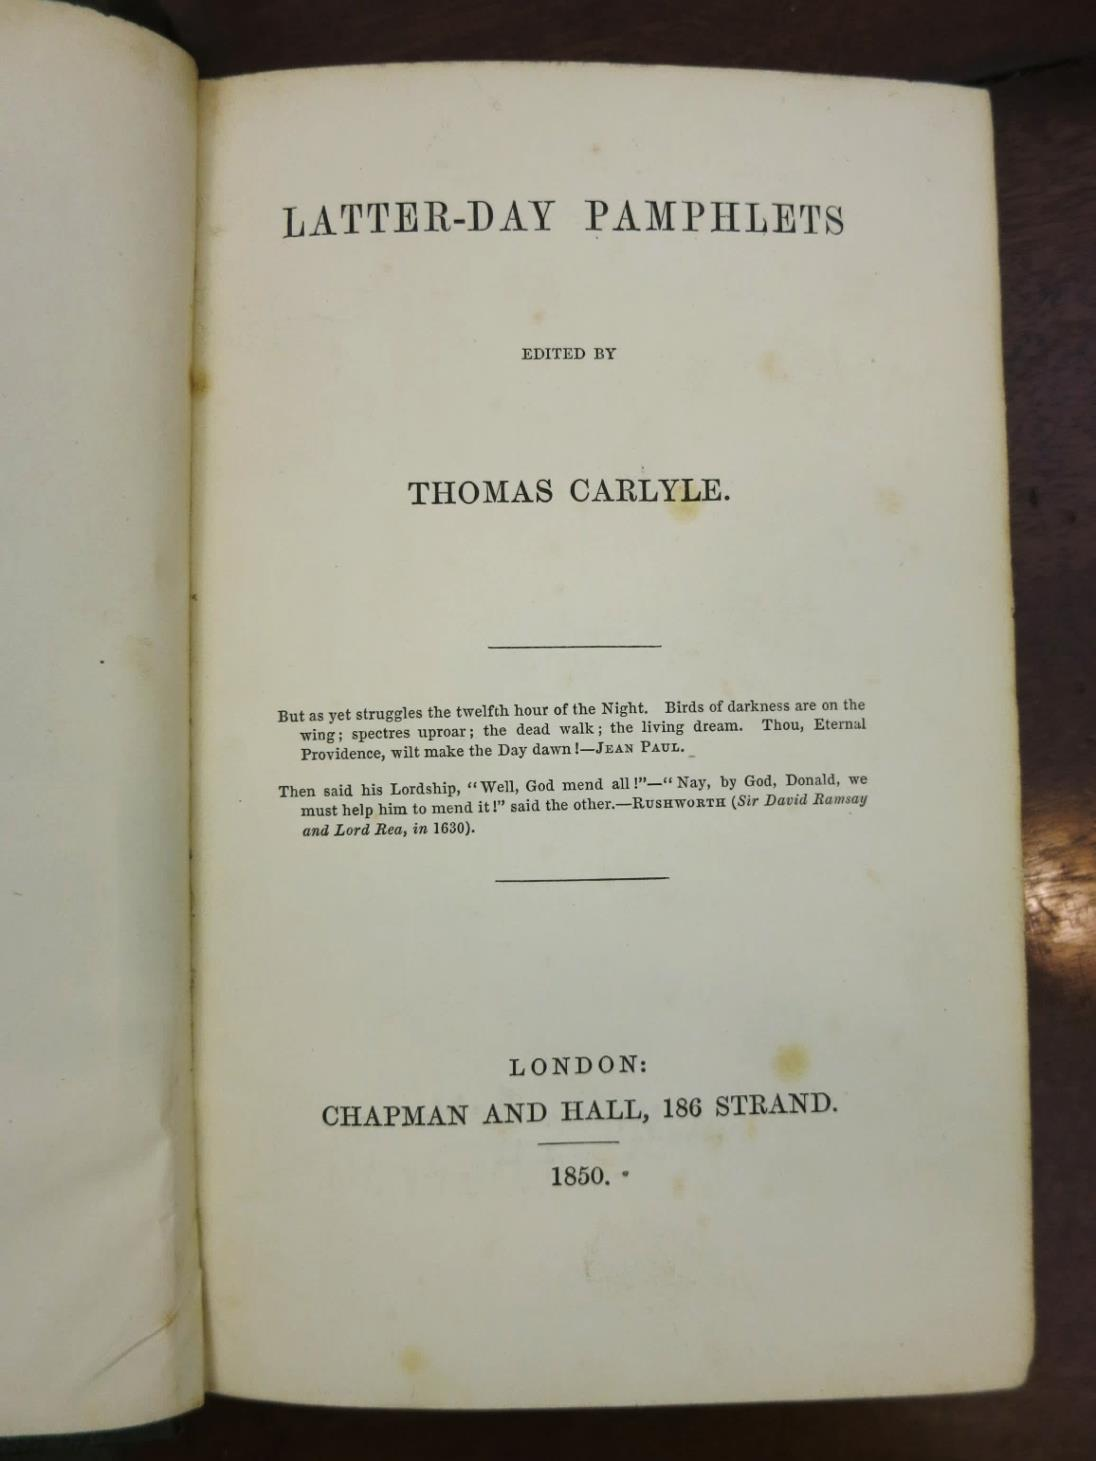 Thomas Carlyle, Latter-Day Pamphlets, 1850, frontispiece